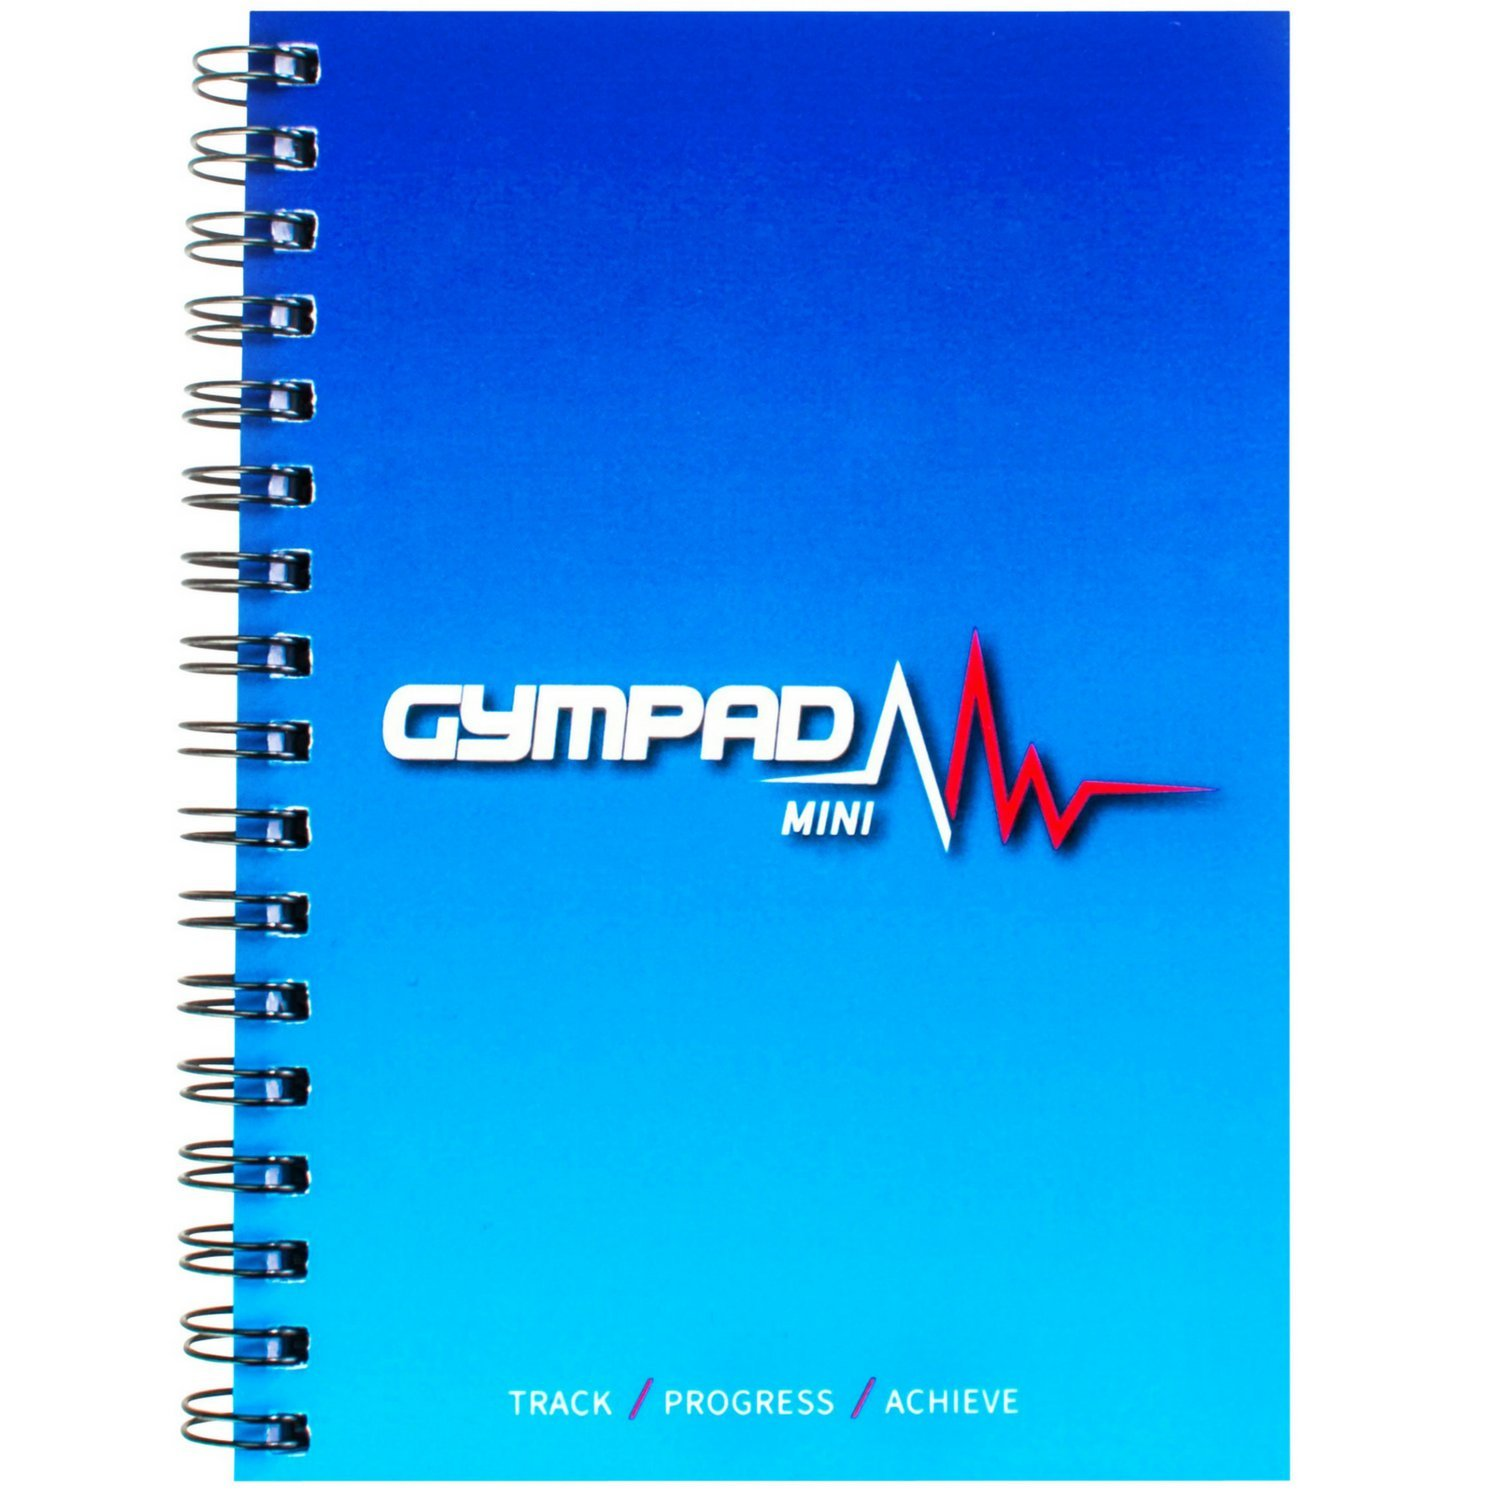 GymPad Mini Workout Journal (4 Colours) - The Small Stylish Way To Track Your Workouts Size A6 9781944788926